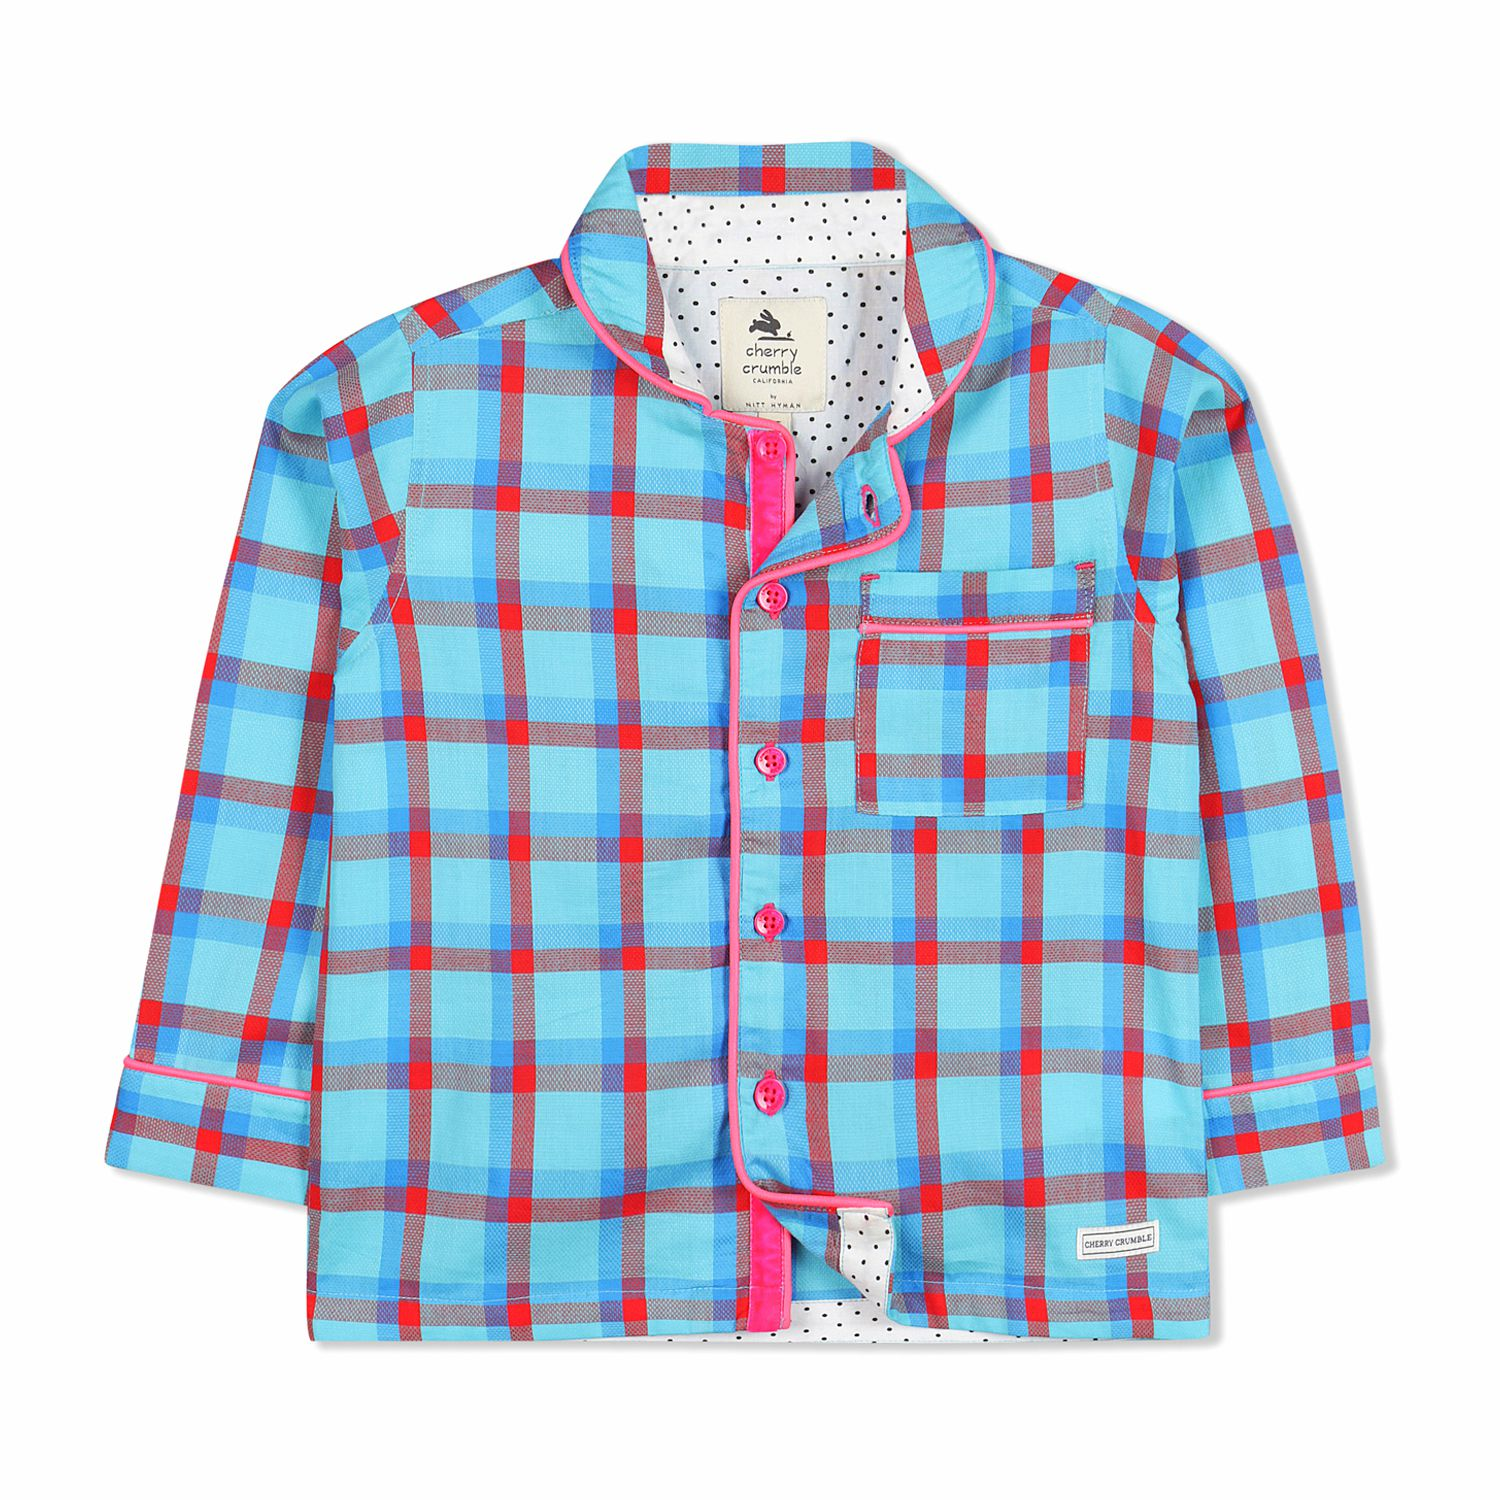 80a8cf4e363 Cherry Crumble Casual Checkered Night Suit - Buy Cherry Crumble ...